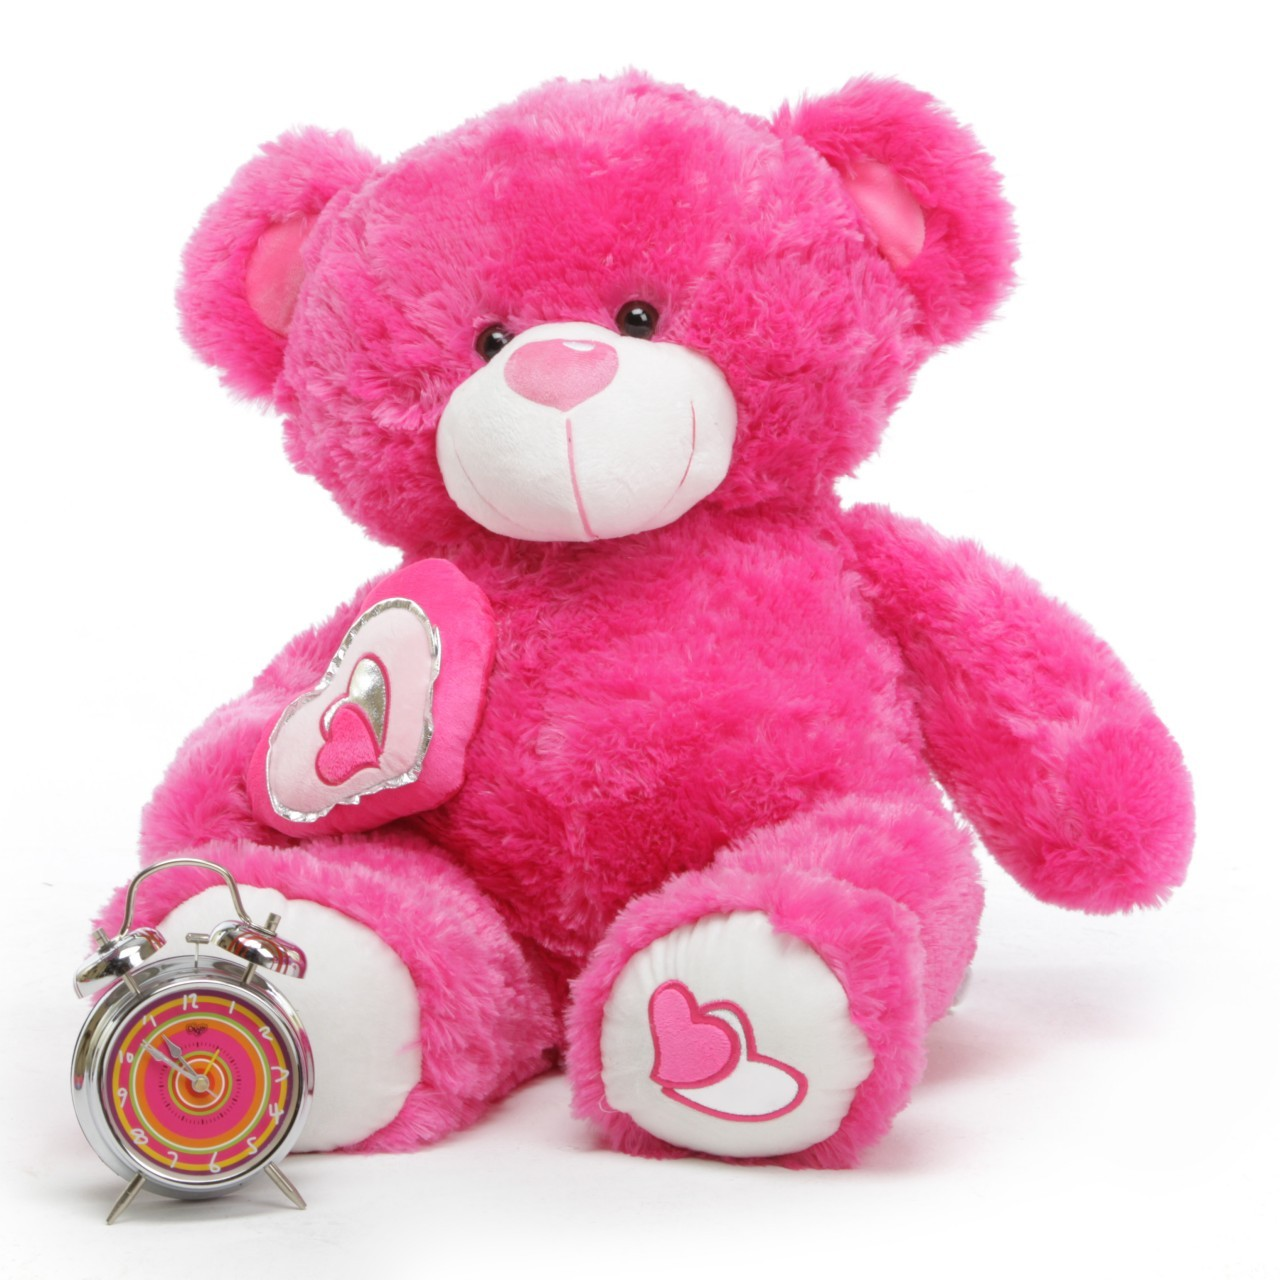 Teddy Bear Pink < Images & galleries